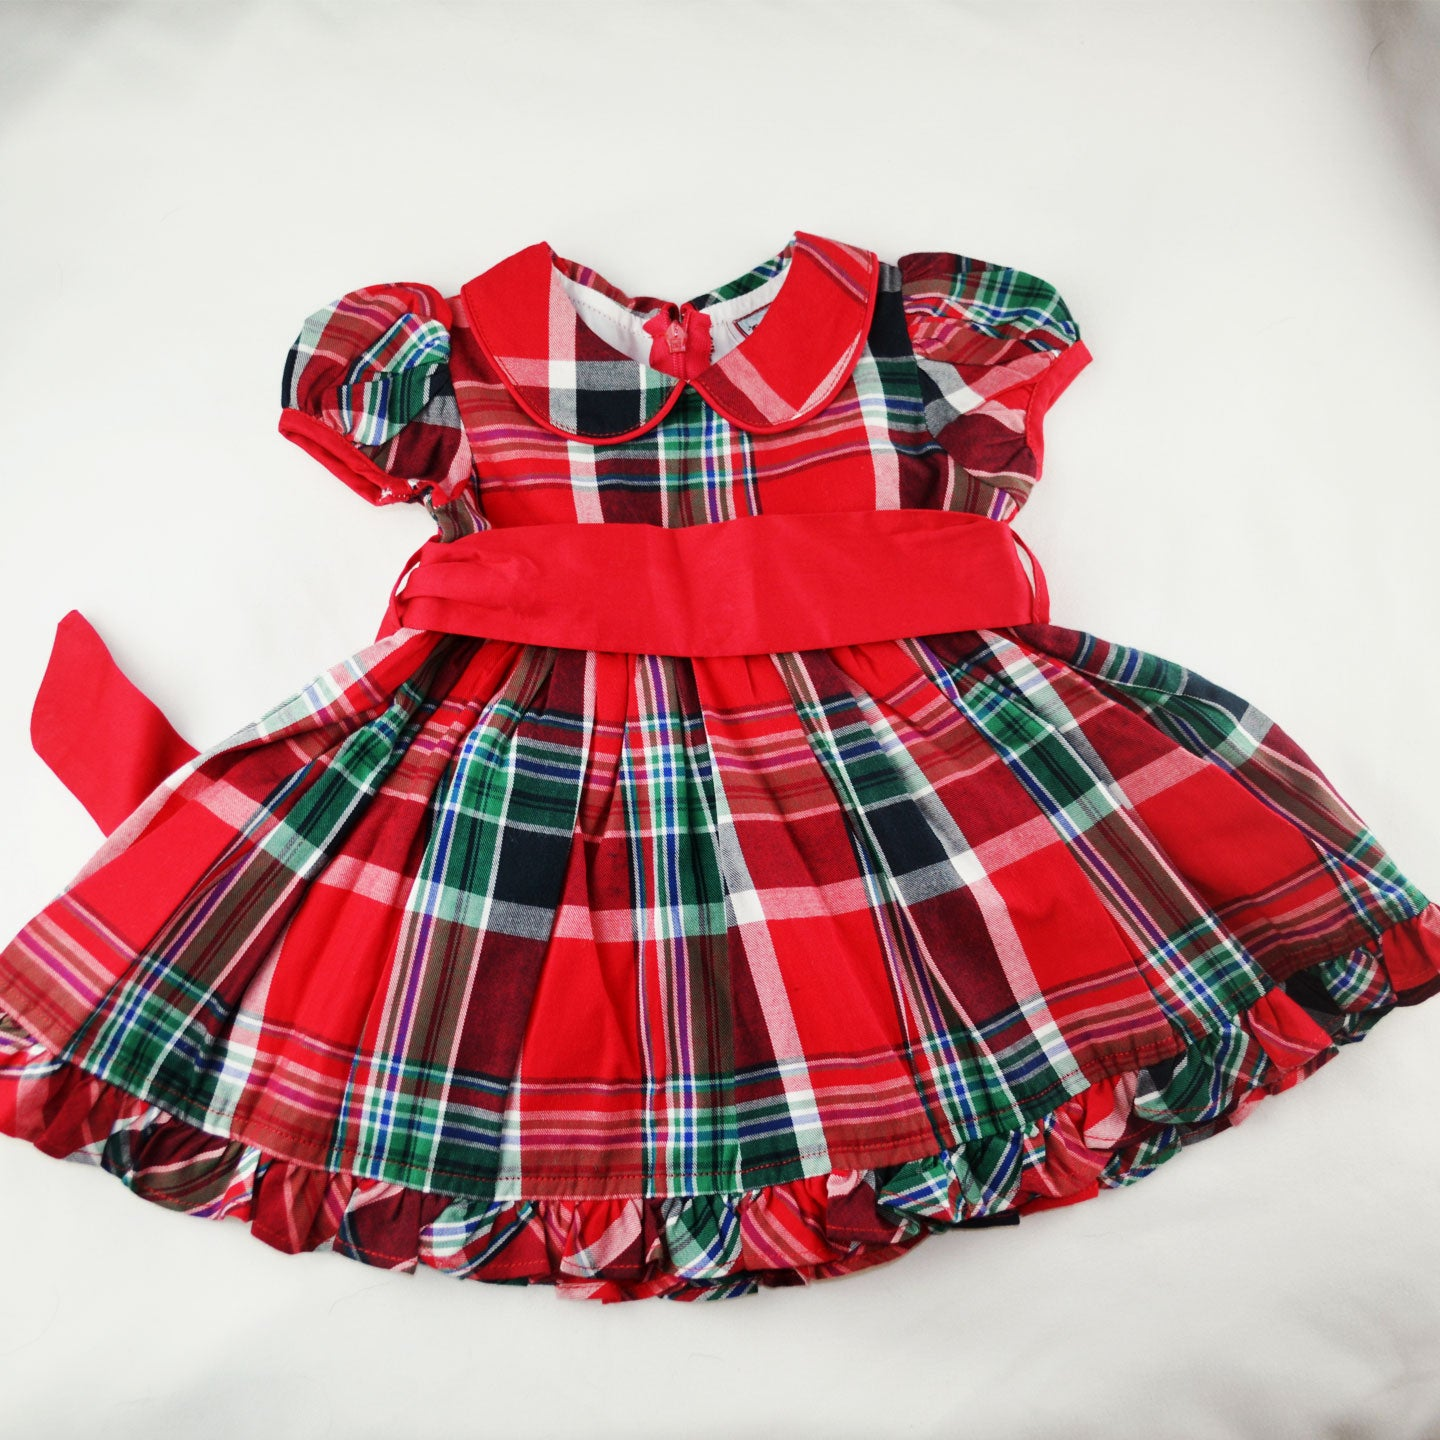 Plaid Holiday Dress with Red Sash